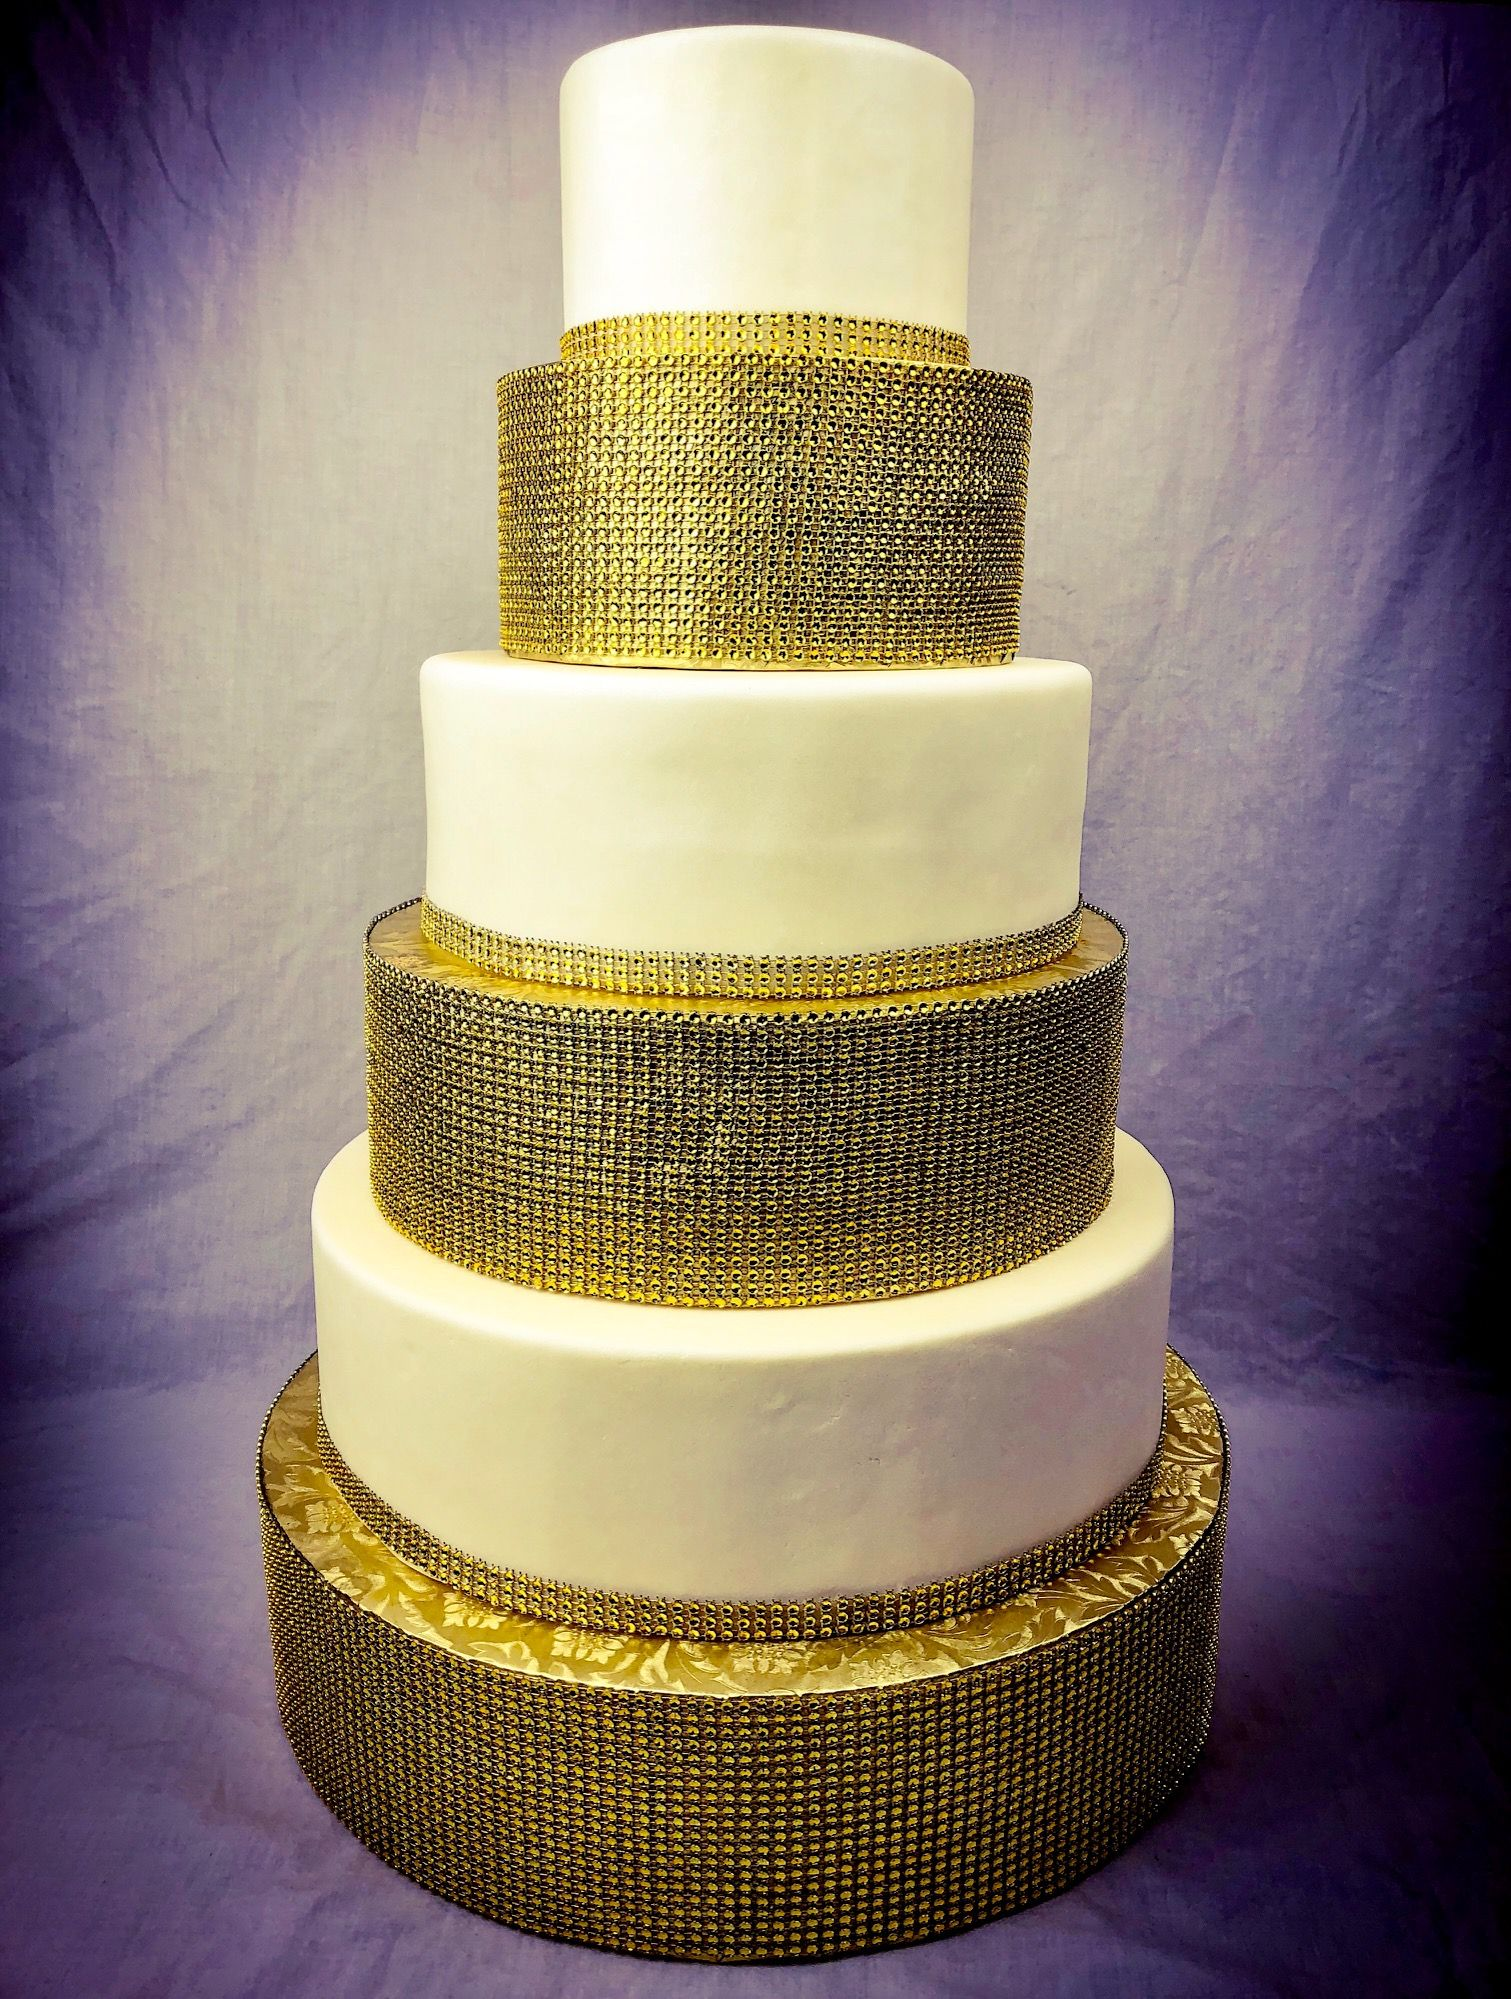 Cake Stand Cupcake Stand Wedding Cake Stand Gold Cake Stand Wedding ...